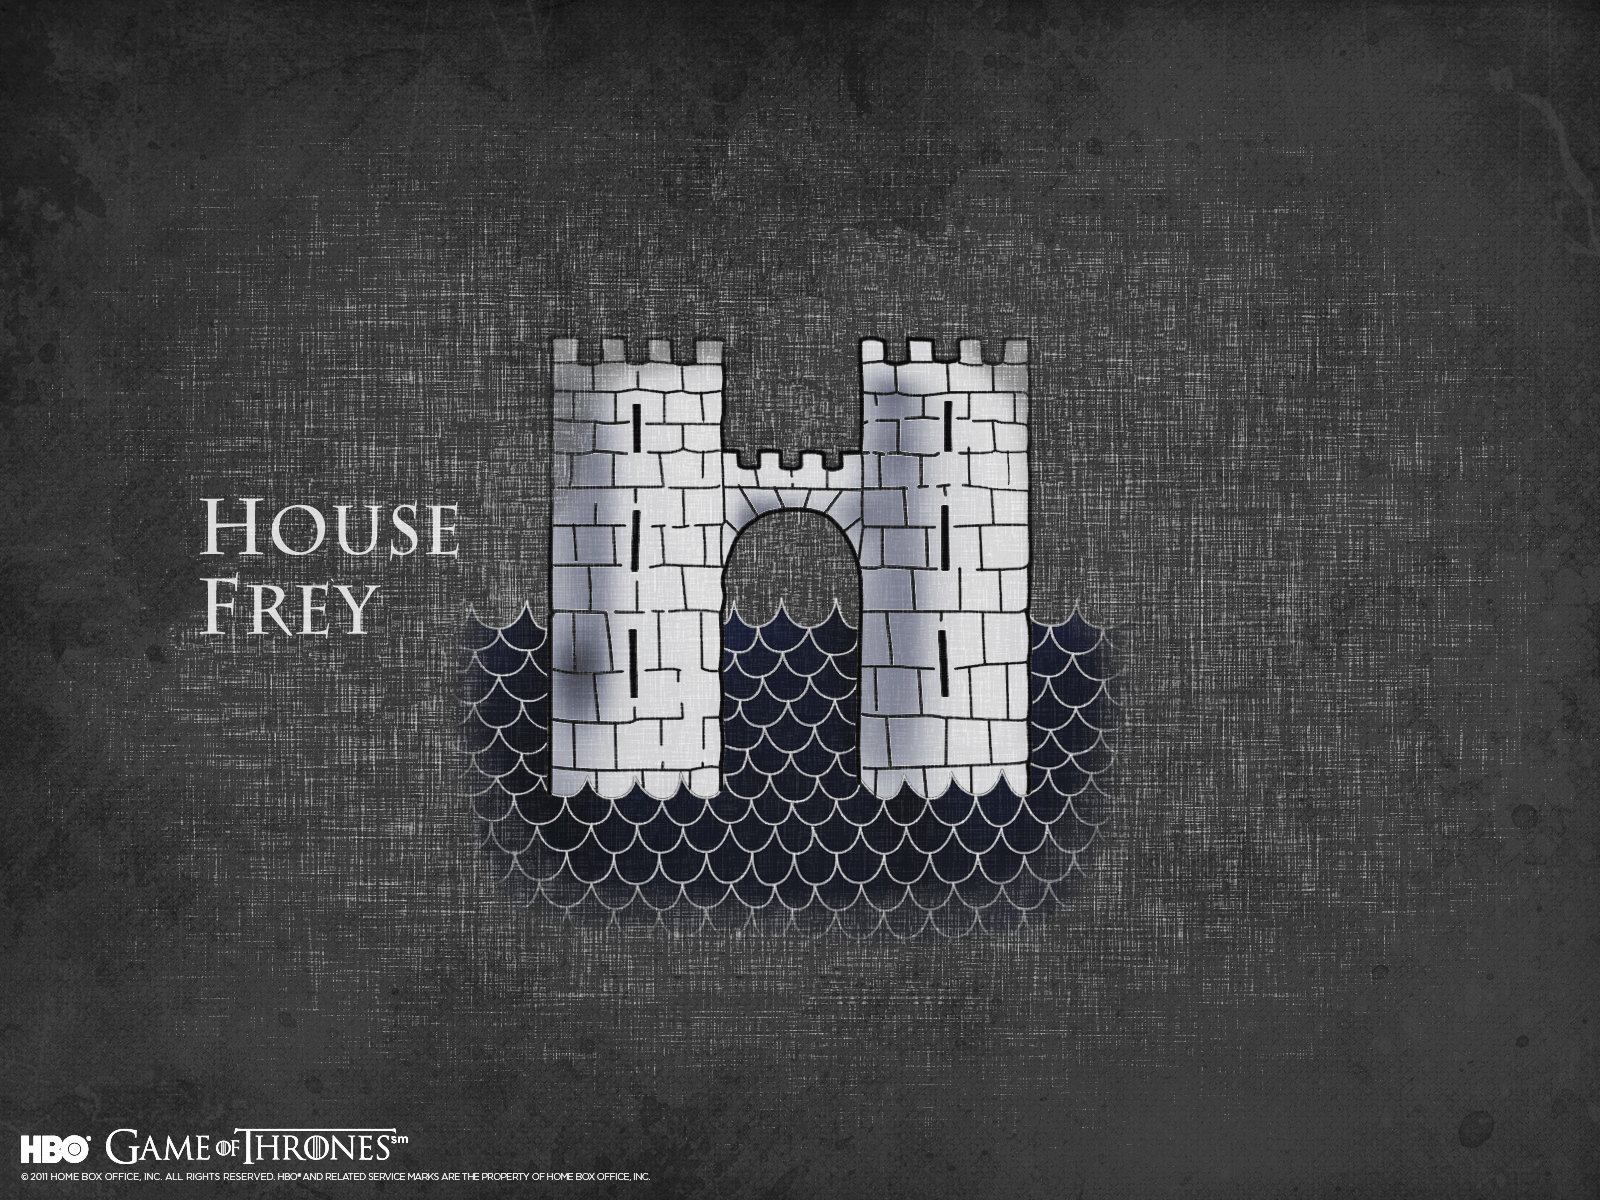 House frey game of thrones wallpaper 31246364 fanpop for House of wallpaper